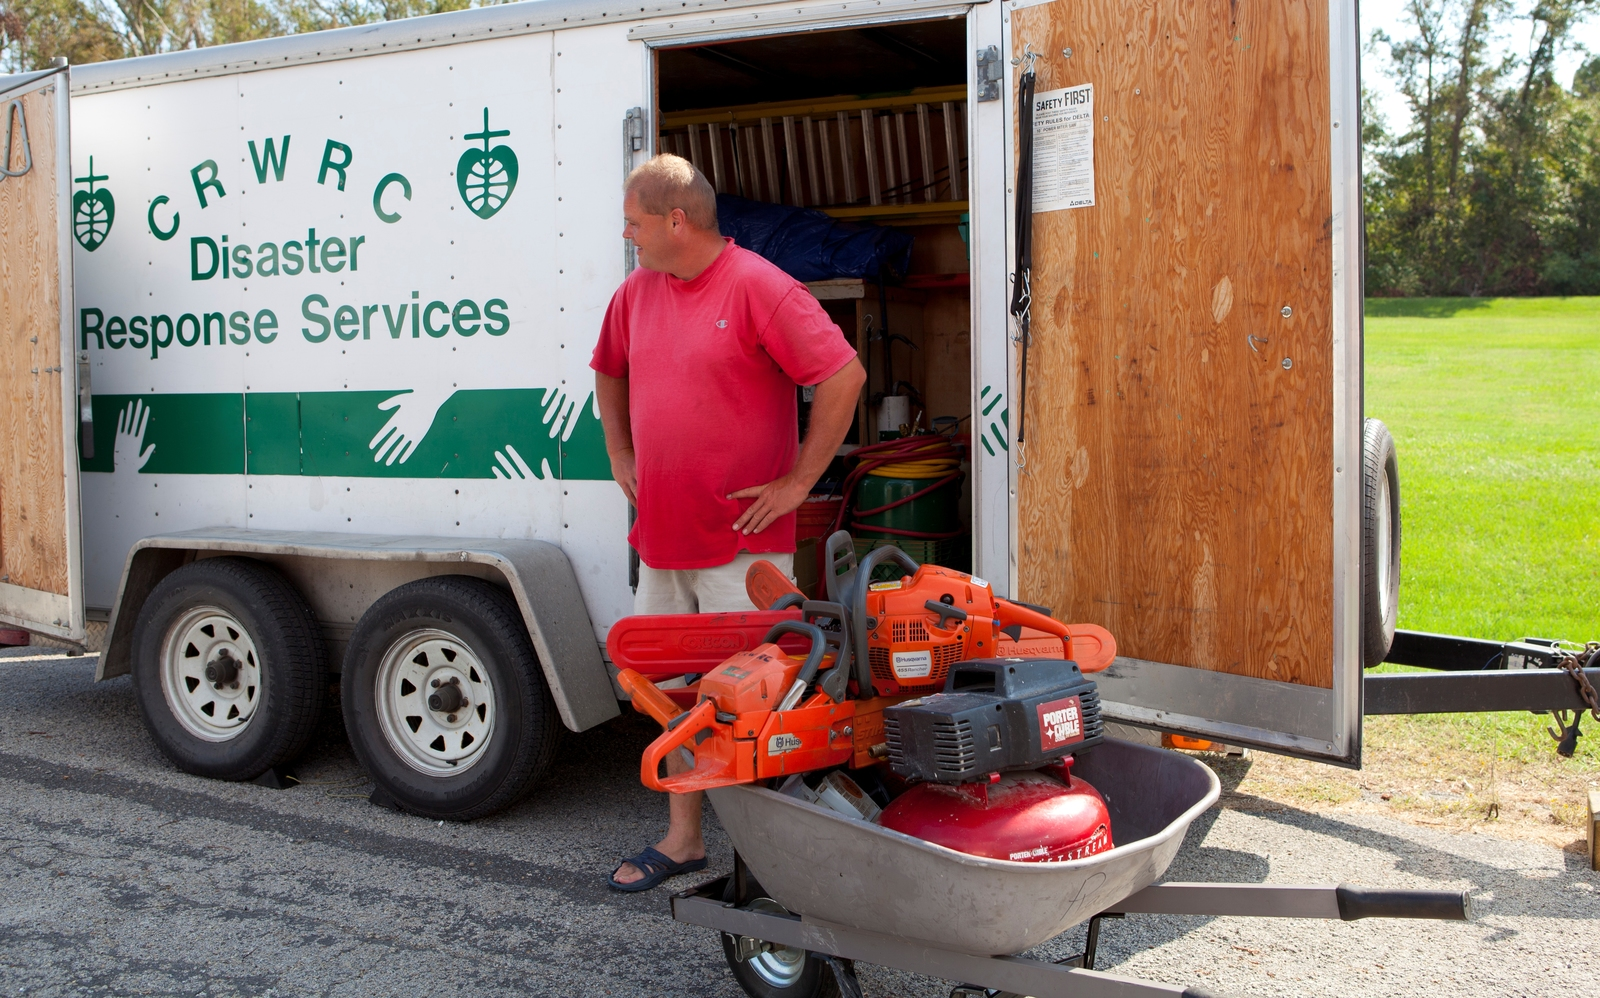 Hurricane/Tropical Storm - Swan Quarter, N. C. , September 10, 2011 -- This volunteer has traveled from Grand Rapids, Michigan to help remove downed trees for Irene survivors. Faith-based volunteer organizations are an important part of the recovery effort.  FEMA photo/Tim Burkitt